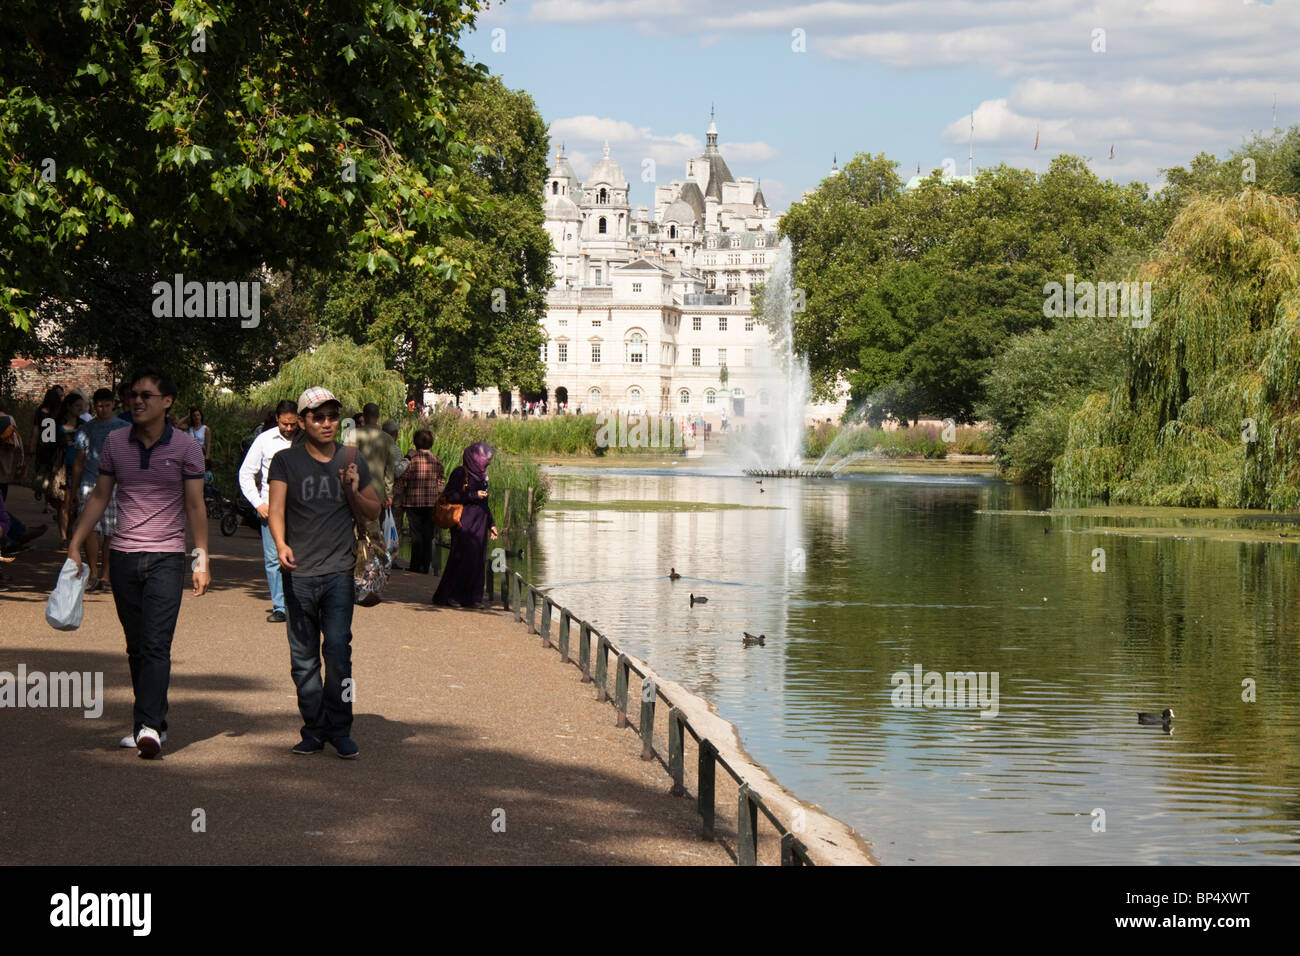 People walking by the lake in St James Park, London, England - Stock Image